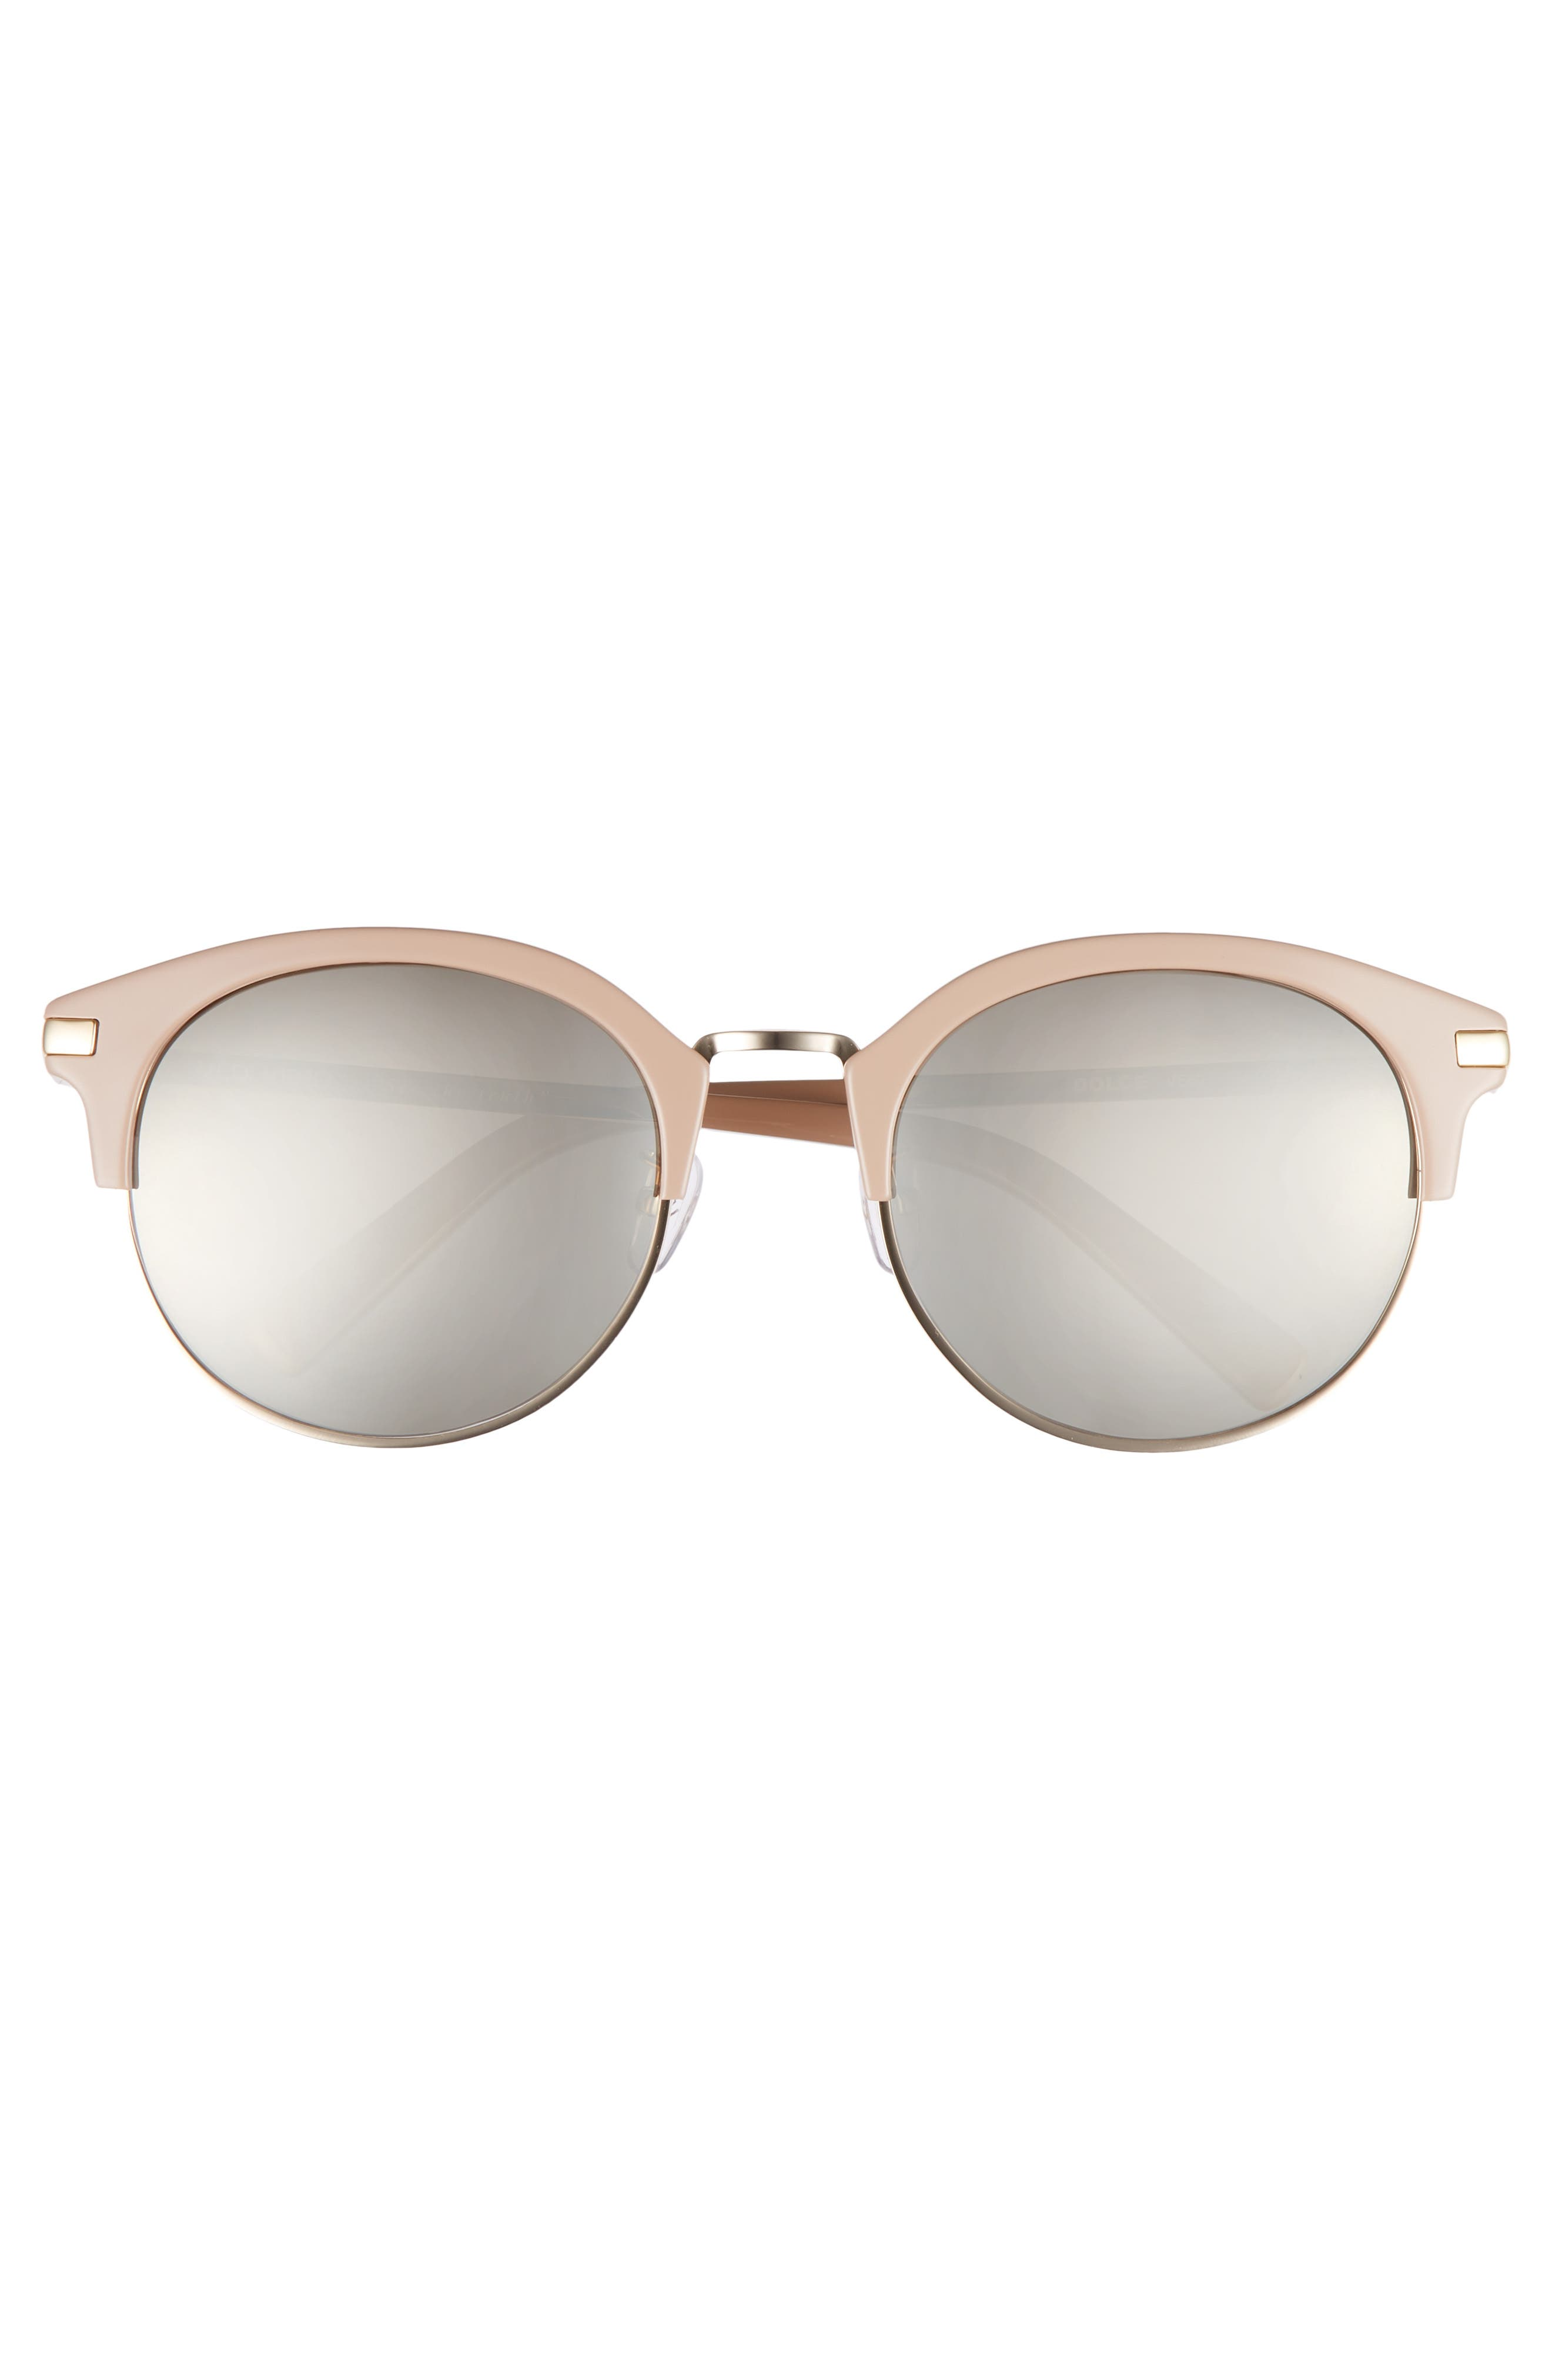 56mm Round Sunglasses,                             Alternate thumbnail 3, color,                             GOLD AND BEIGE/GRADIENT BROWN